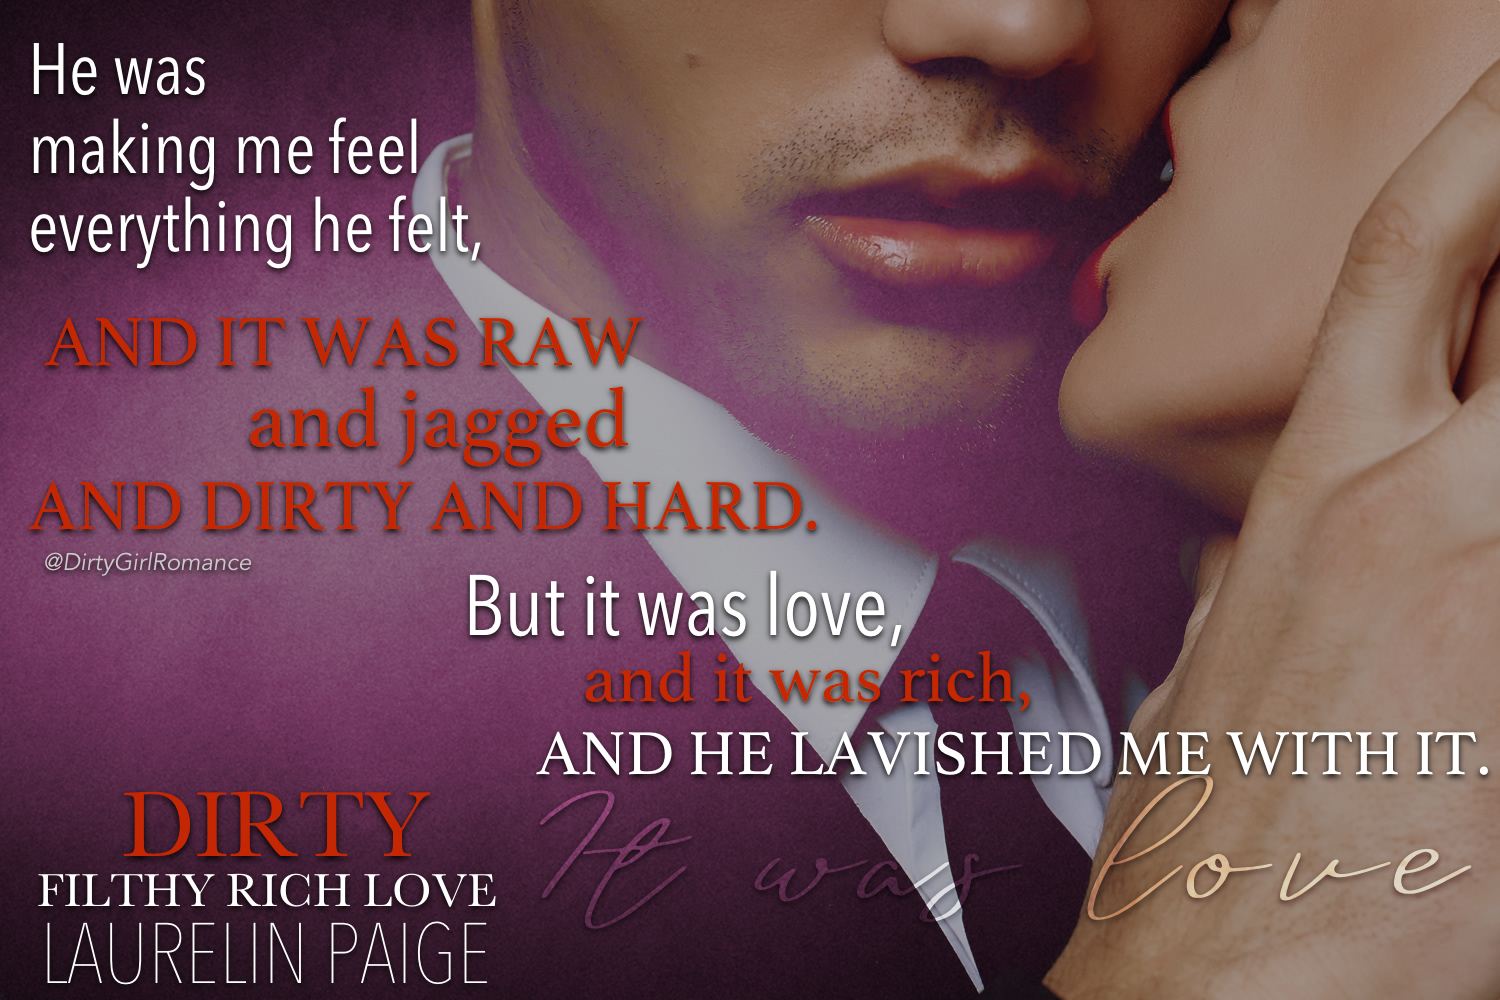 Dirty filthy rich love dirty duet 2 by laurelin paige right then right there with my hands tied behind my back my cheek pressed against the wall and his hand clasped at my throat i finally understood the fandeluxe PDF